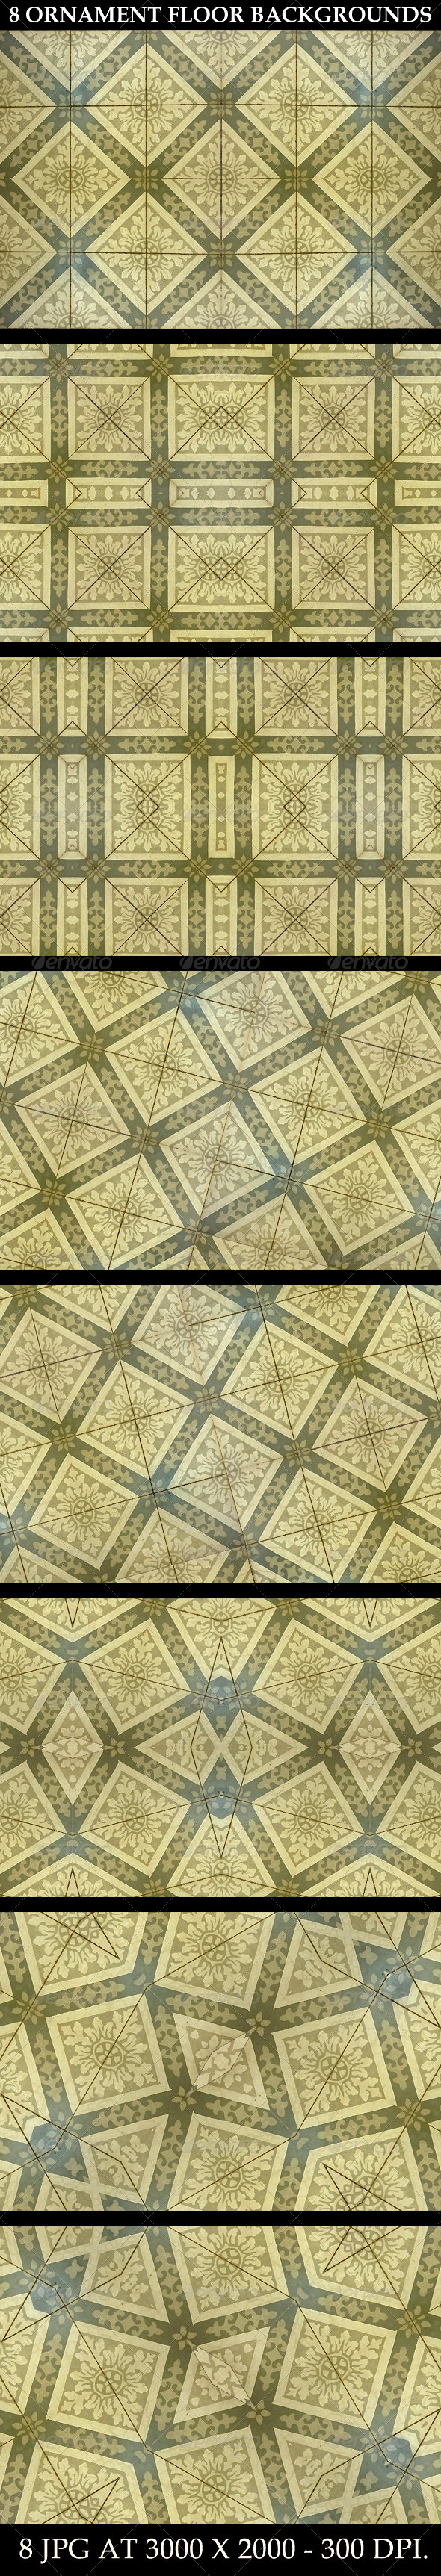 8 Ornament Floor Background Patterns - Patterns Backgrounds